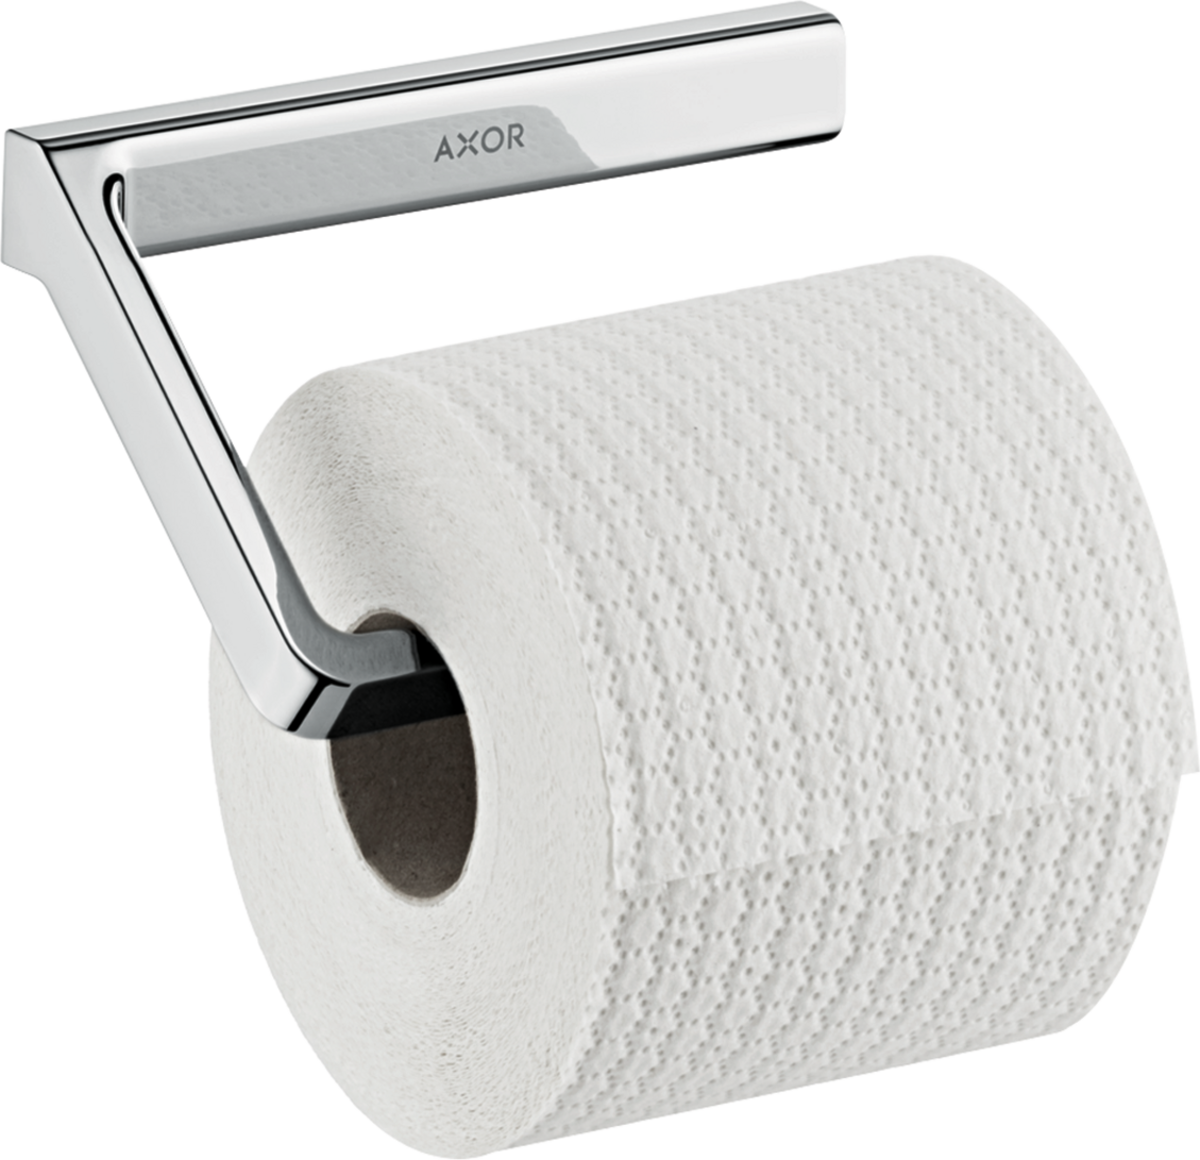 Axor Accessories Axor Universal Accessories Toilet Paper Holder Without Cover Art No 42846000 Axor Us